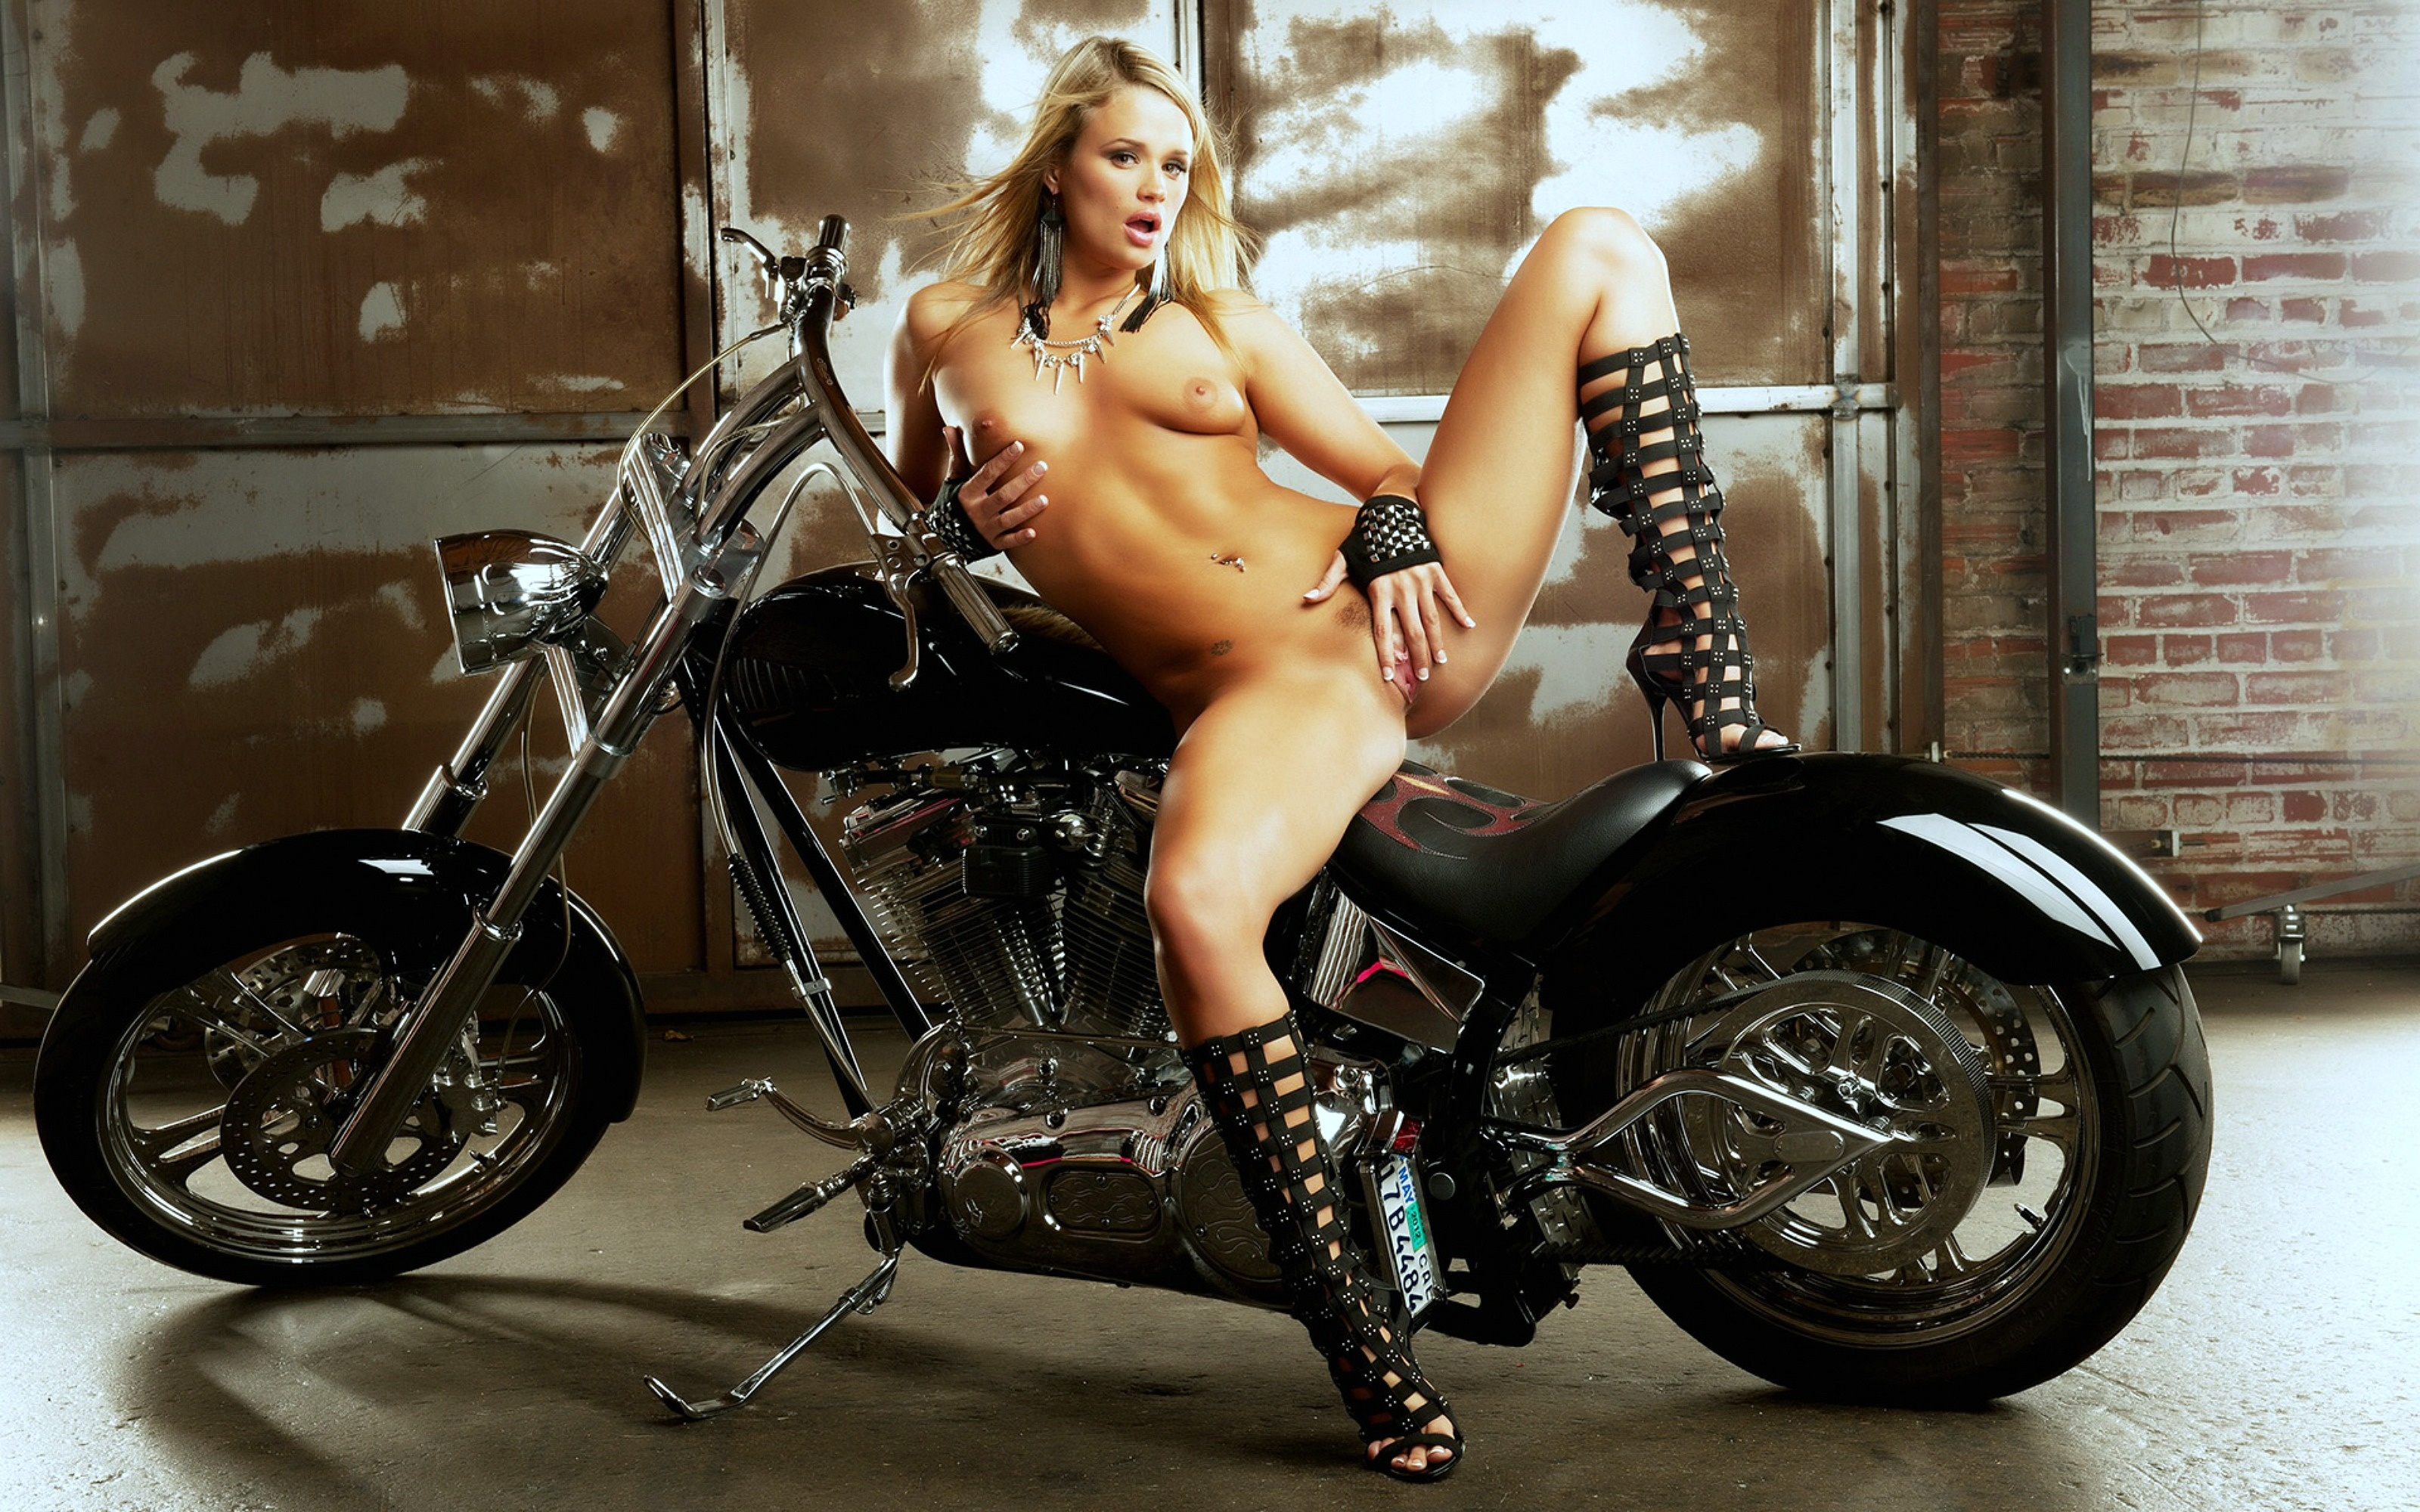 Pity, that Amateur naked girlfriends motorcycle right! like